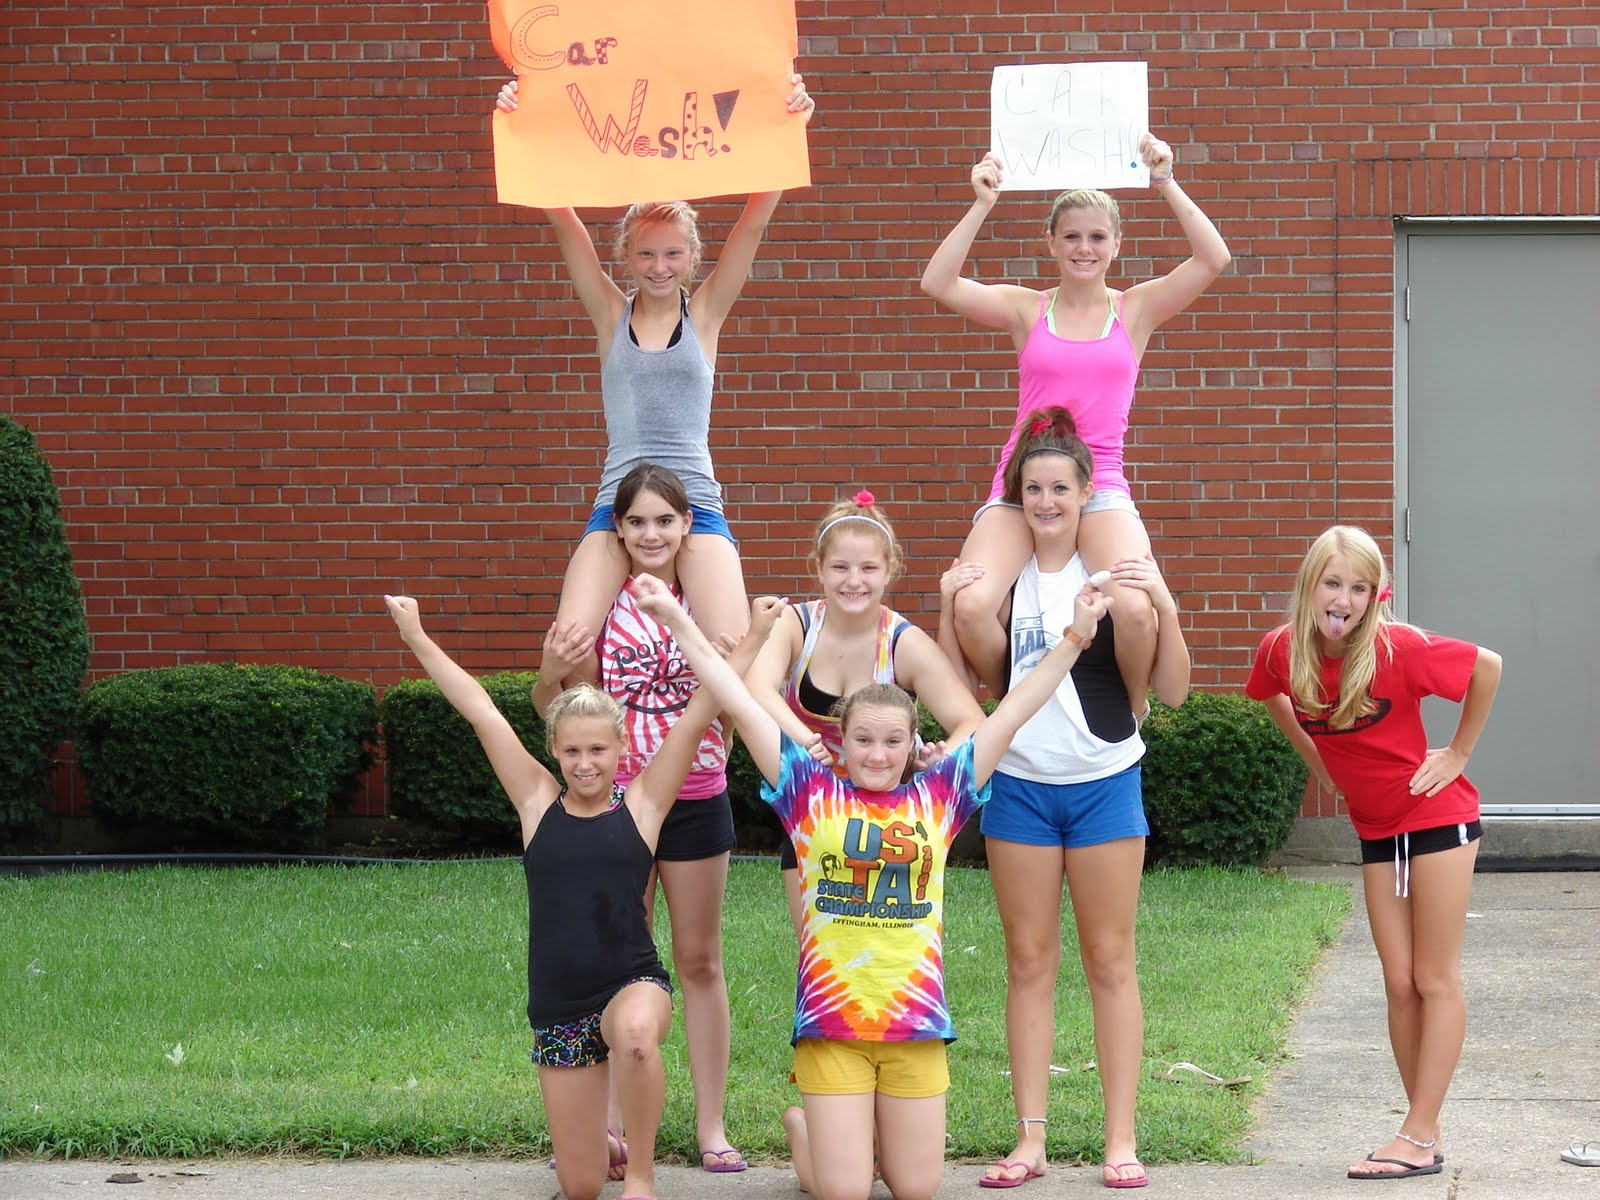 High School Cheerleaders Car Wash http://thegumfamily.blogspot.com/2010/08/porta-cheerleaders-car-wash.html